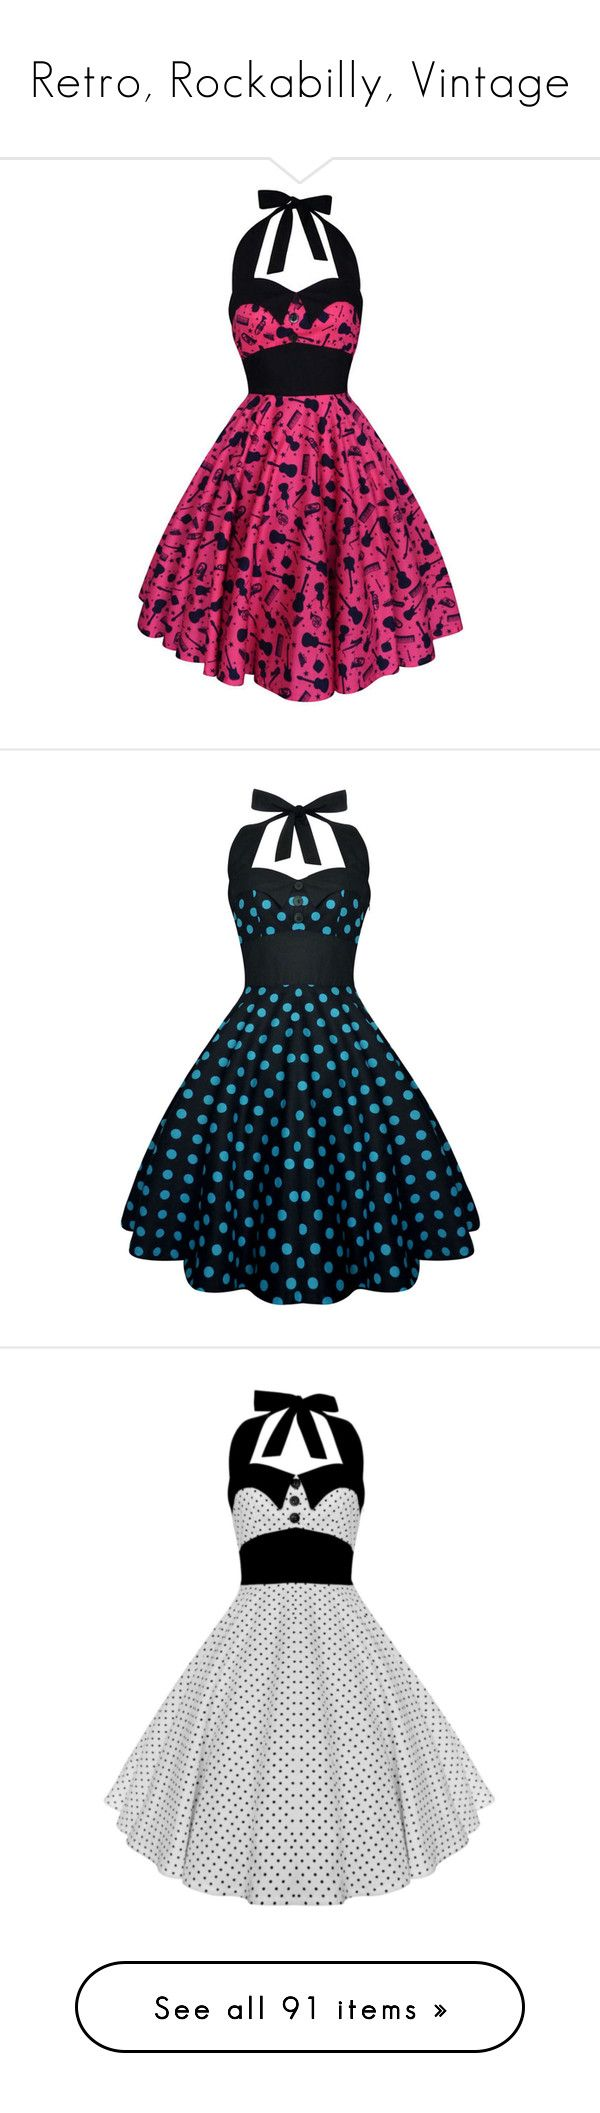 """""""Retro, Rockabilly, Vintage"""" by pati777 ❤ liked on Polyvore featuring dresses, plus size party cocktail dresses, plus size vintage dresses, plus size prom dresses, vintage prom dresses, plus size cotton dresses, grey, women's clothing, vintage dresses and plus size swing dress"""